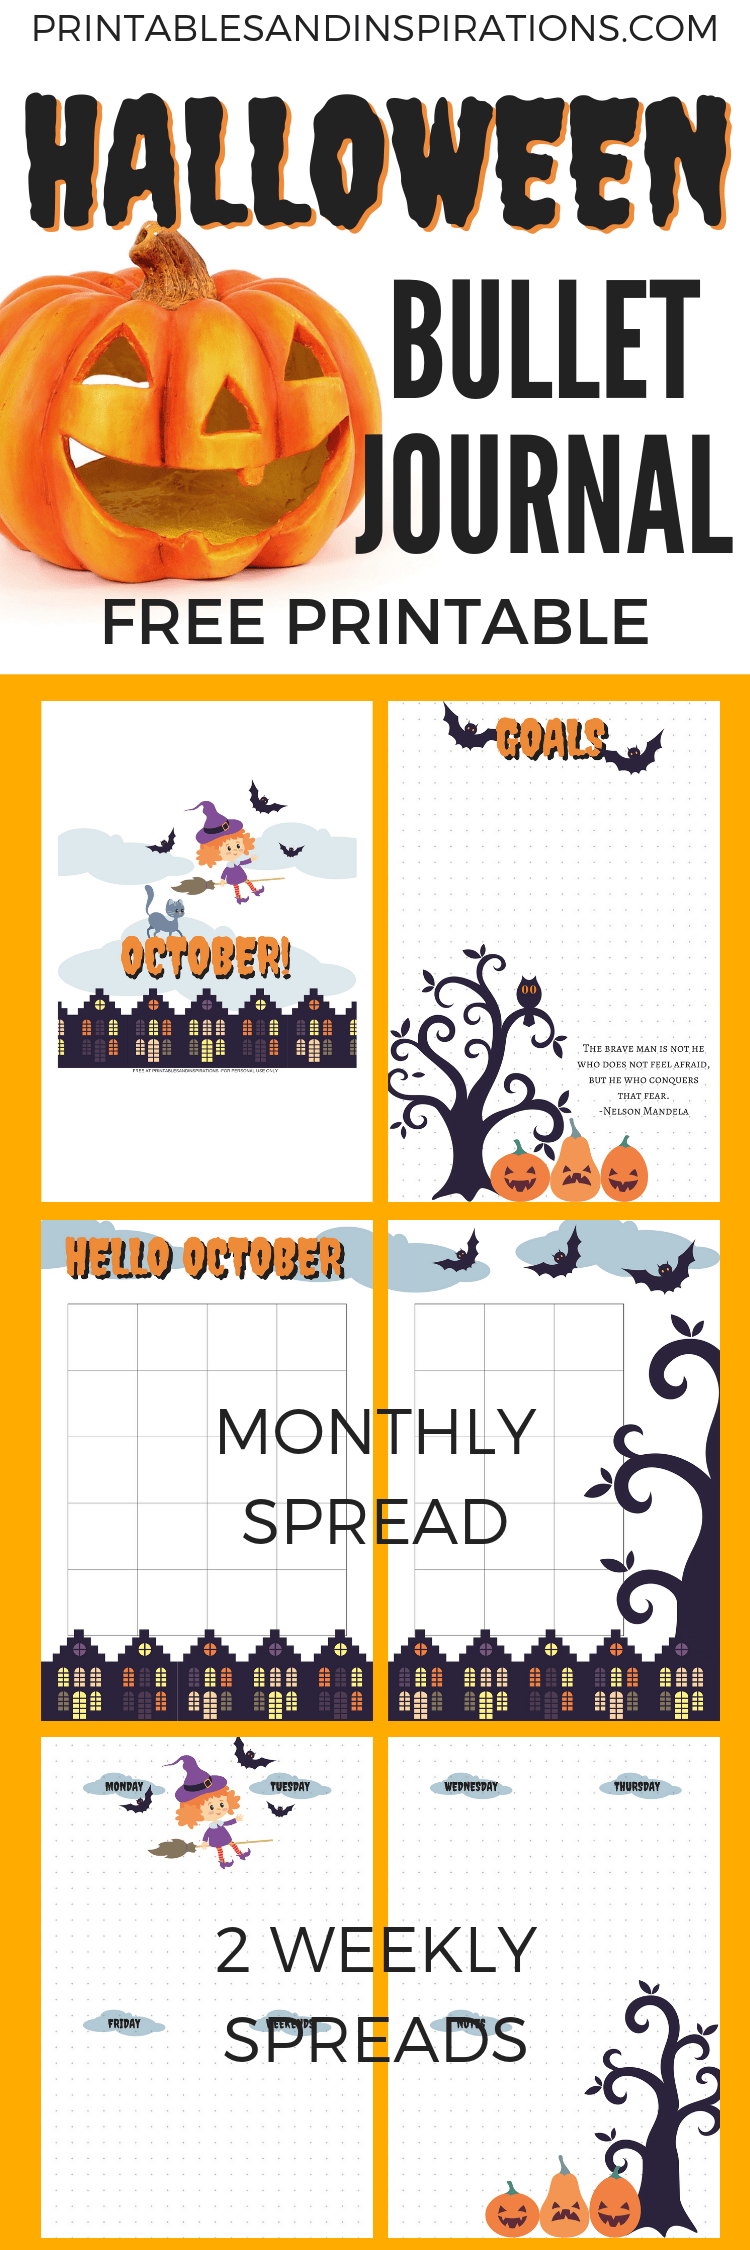 Halloween Bullet Journal Setup For October! Free printable Halloween themed planner pages for your bujo inspiration. Weekly spread, monthly spread, goals page and title page. #bulletjournal #bujoideas #freeprintable